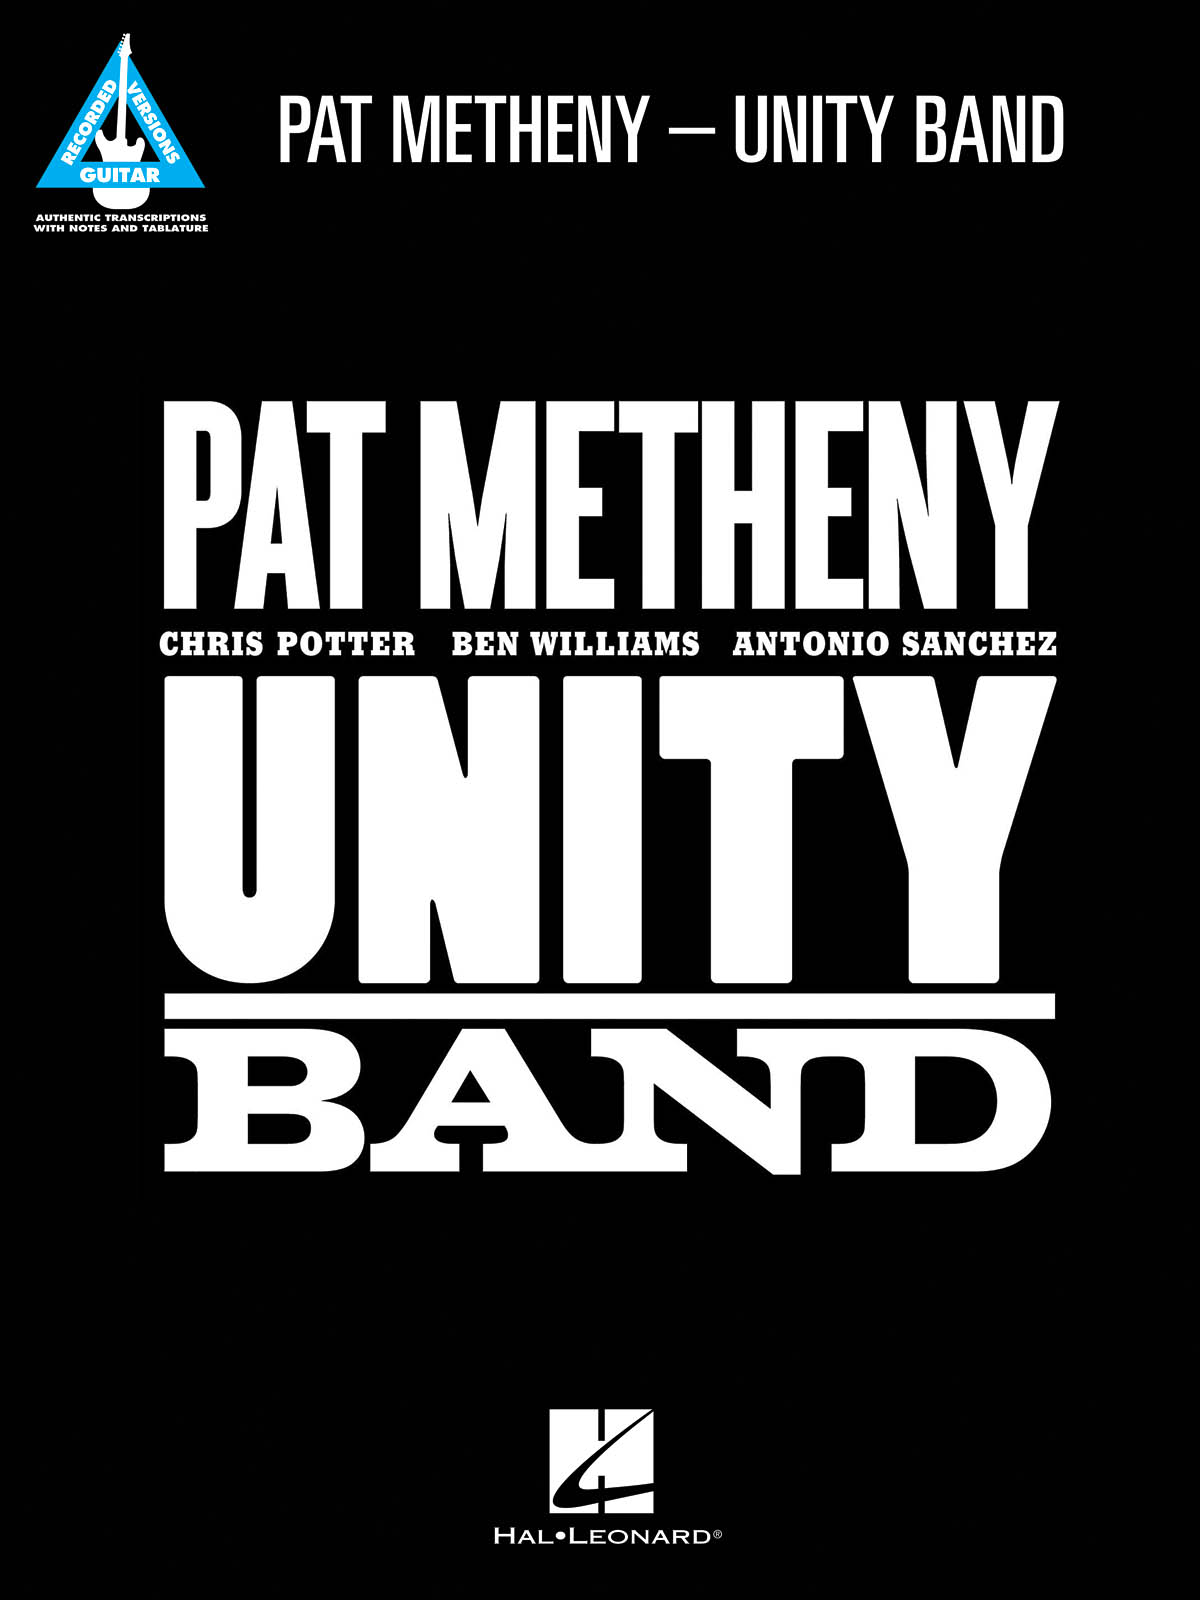 Pat Metheny-Unity Band